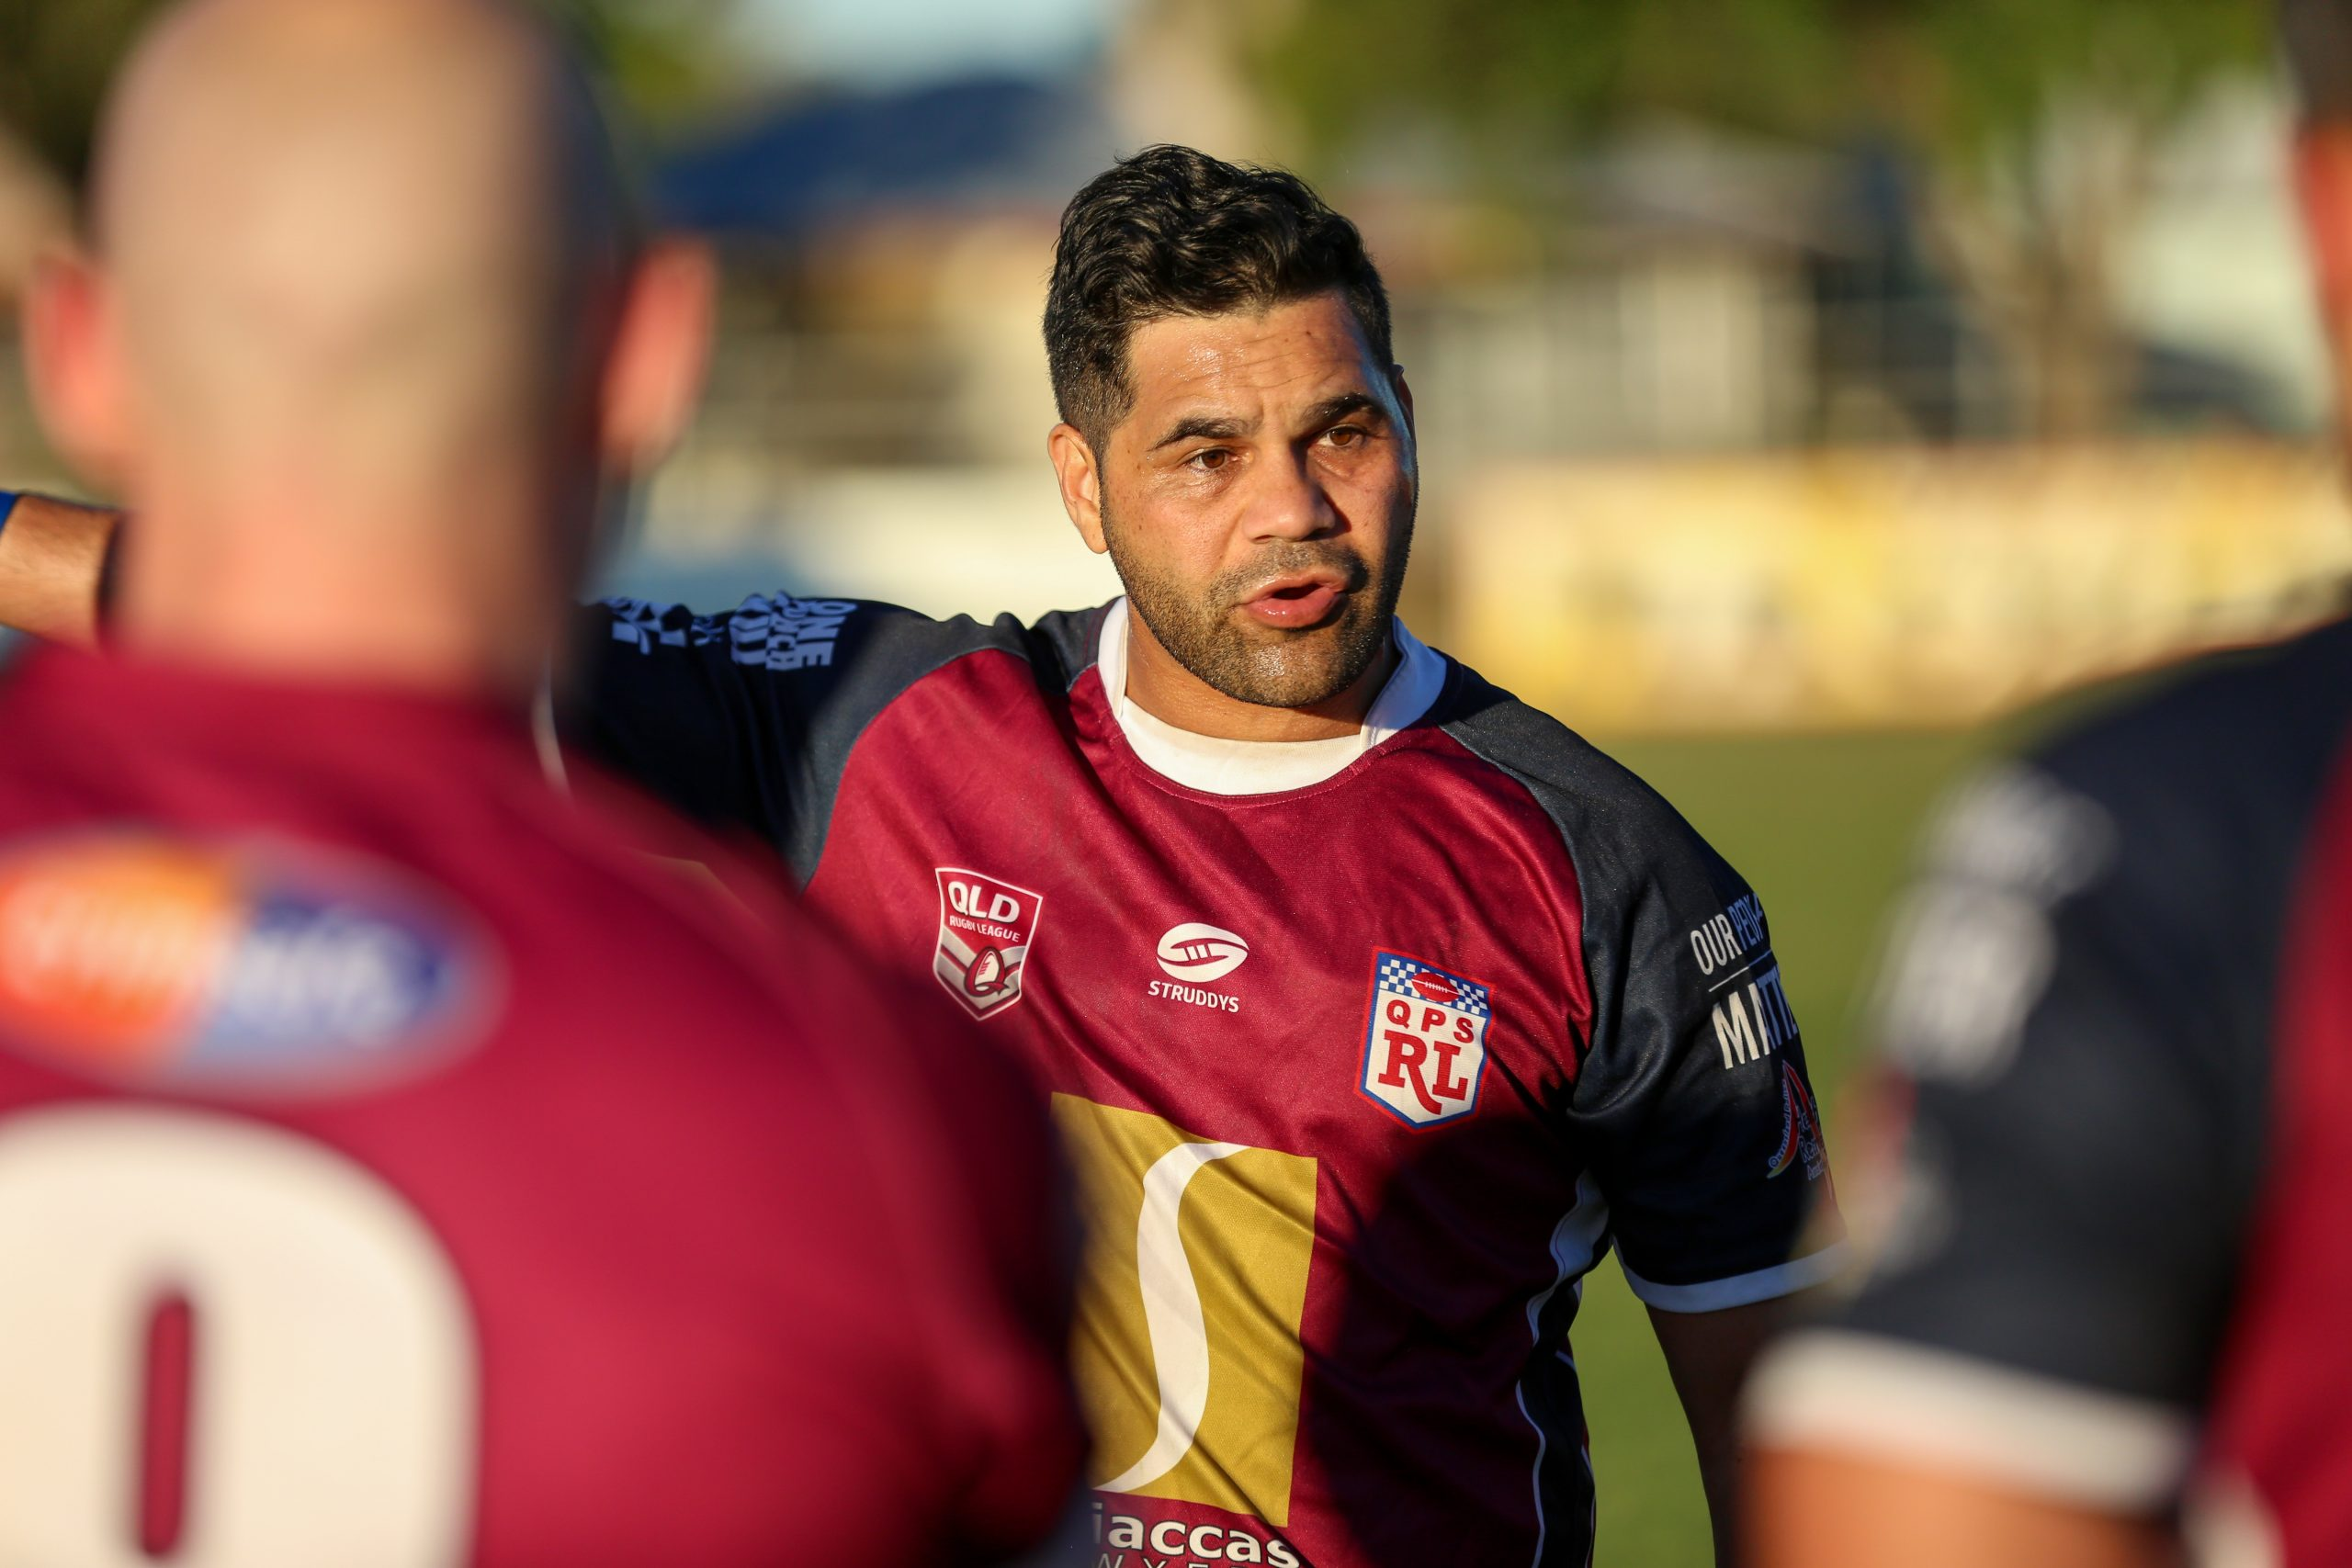 Queensland Police name team to face NSW